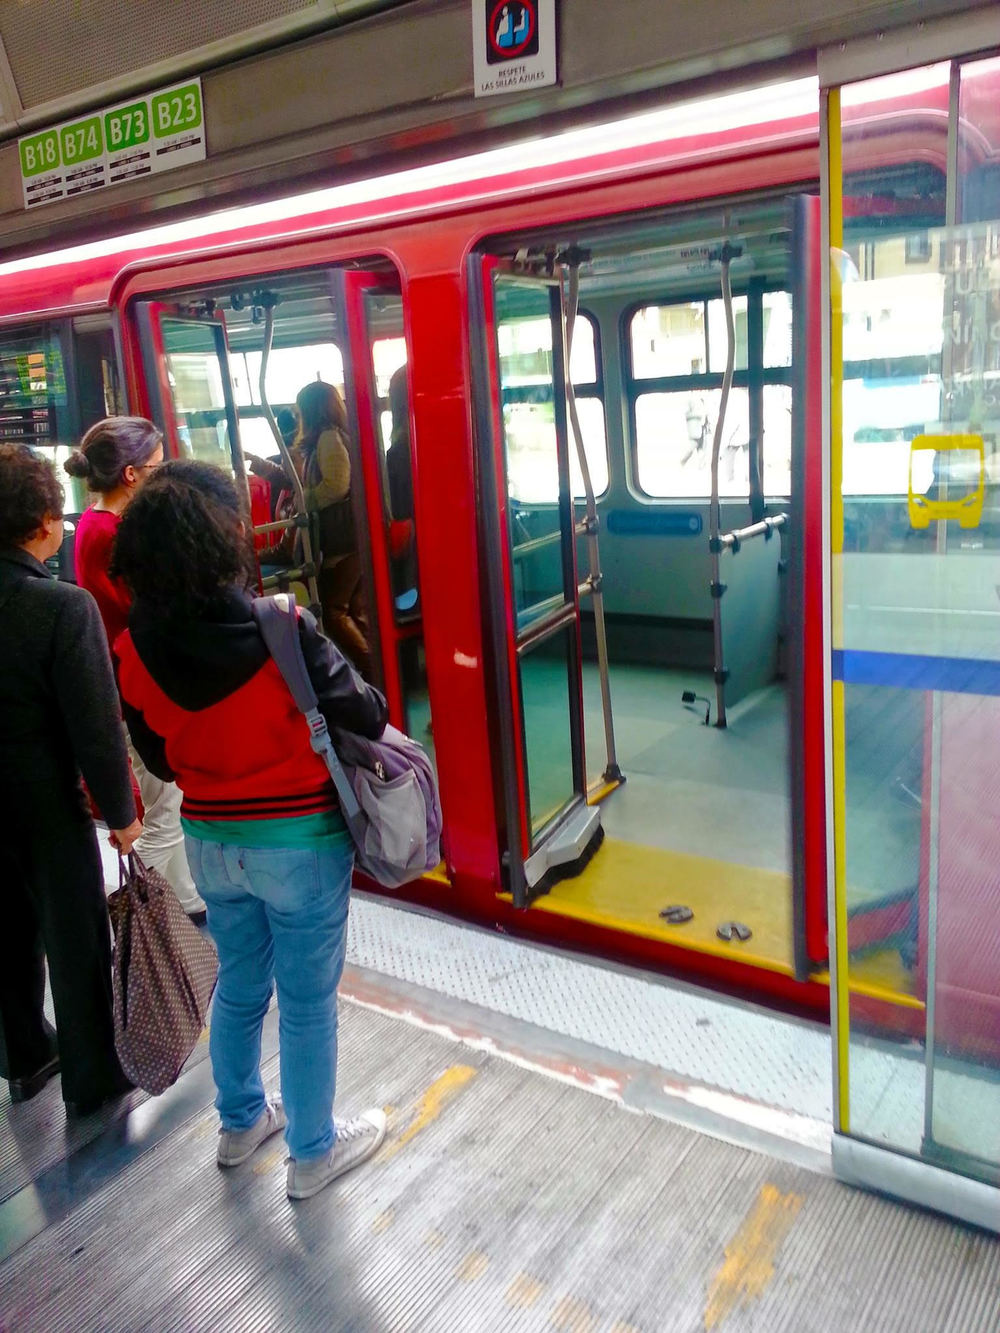 Photo credit: Ed Meng, photo of: TransMilenio bus in Bogota, Columbia